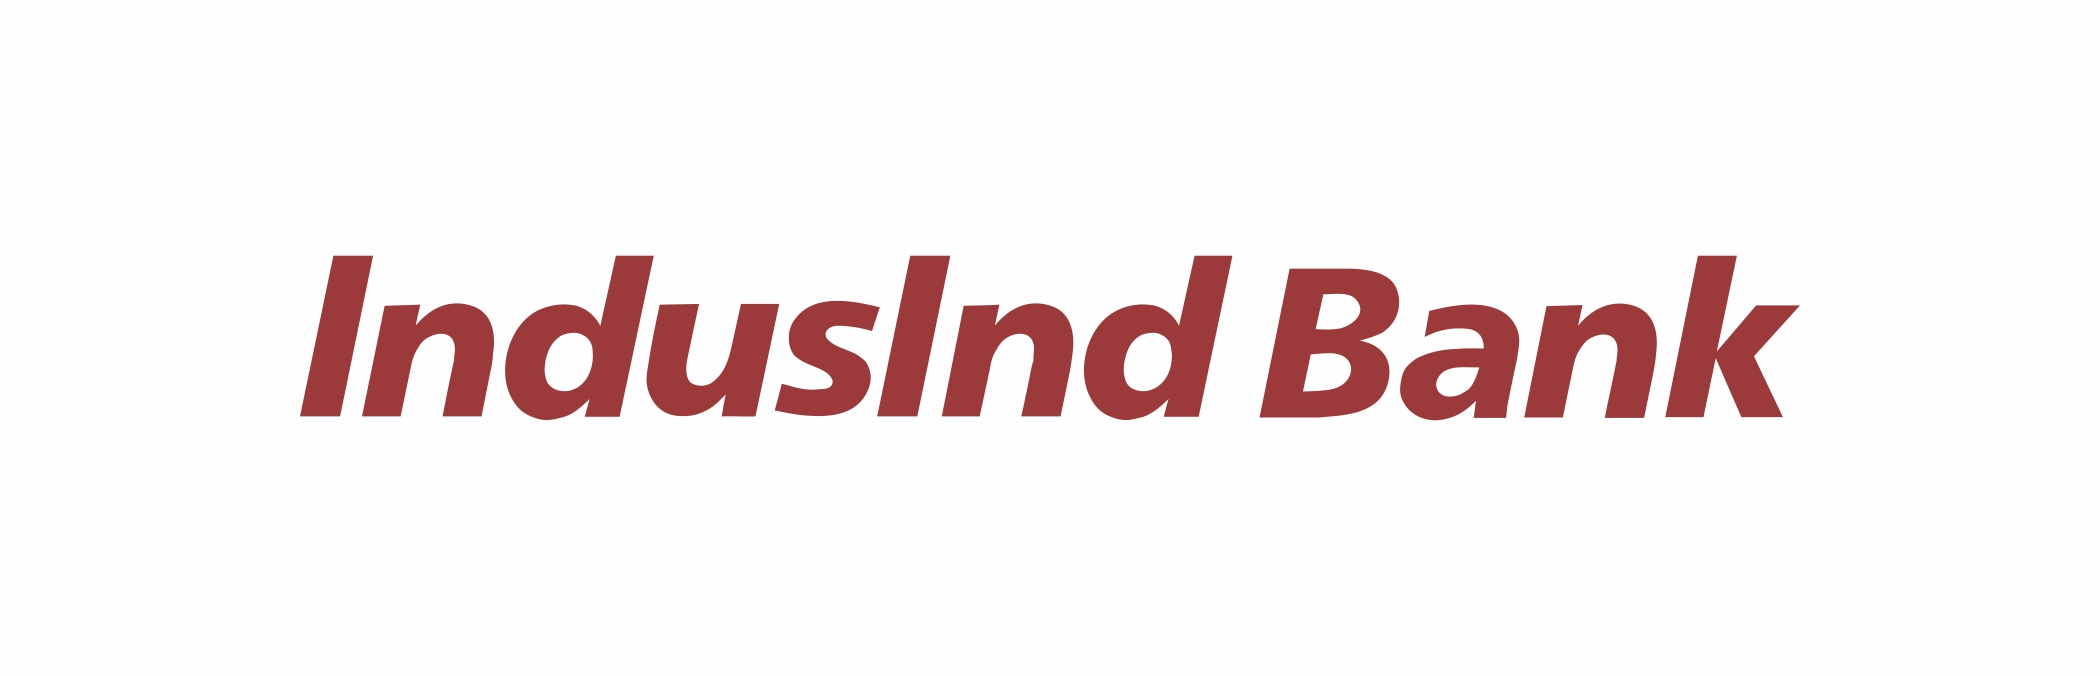 IndusInd Bank -Chetty St, Puducherry